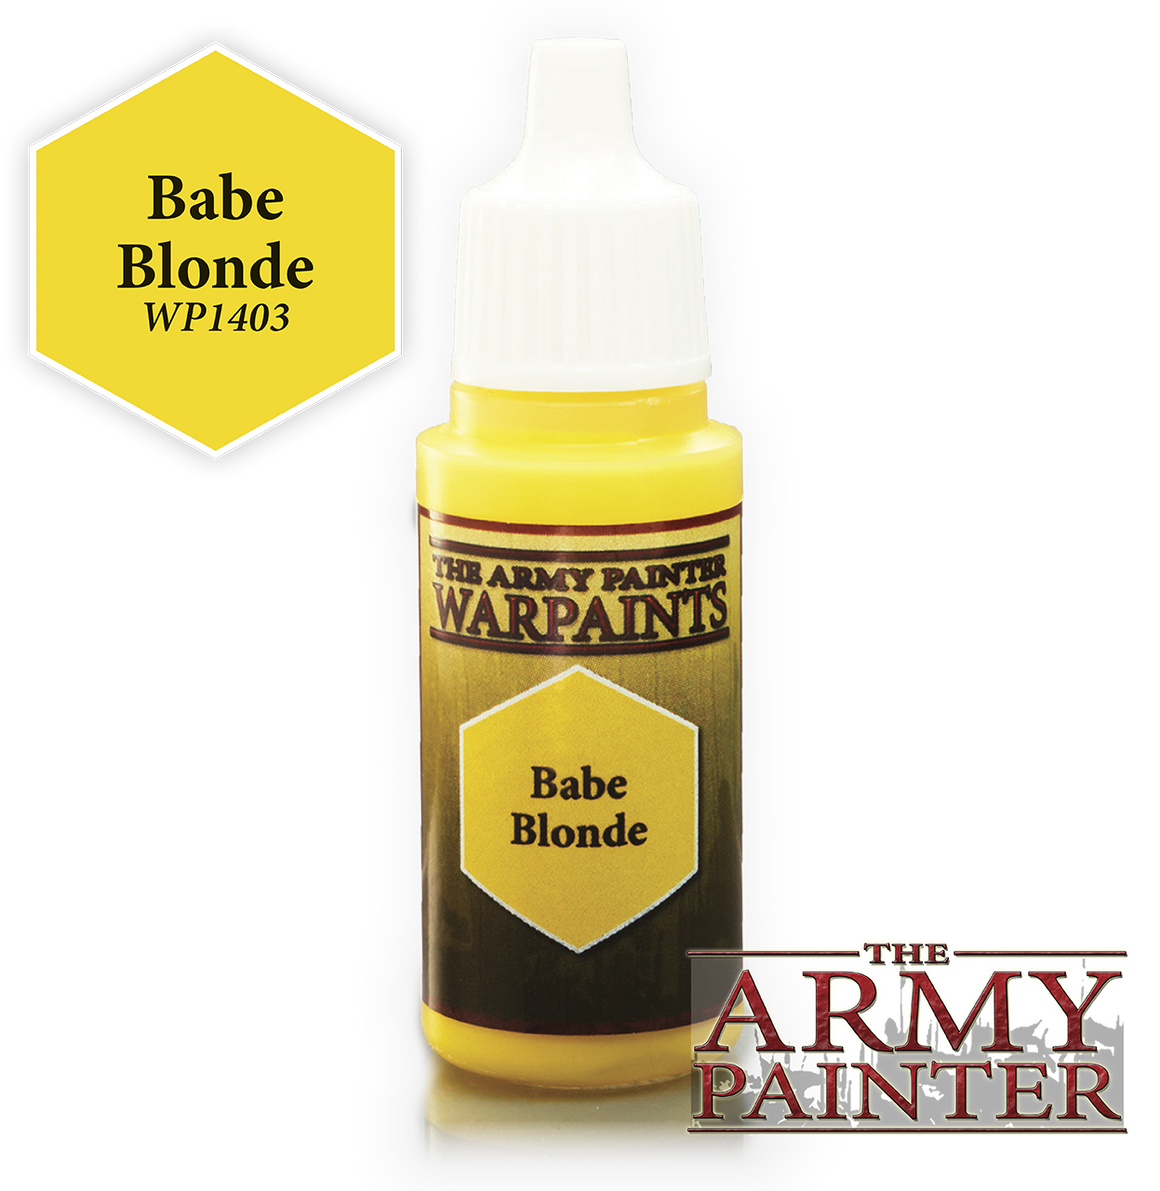 Army Painter Acrylic Warpaint - Babe Blonde